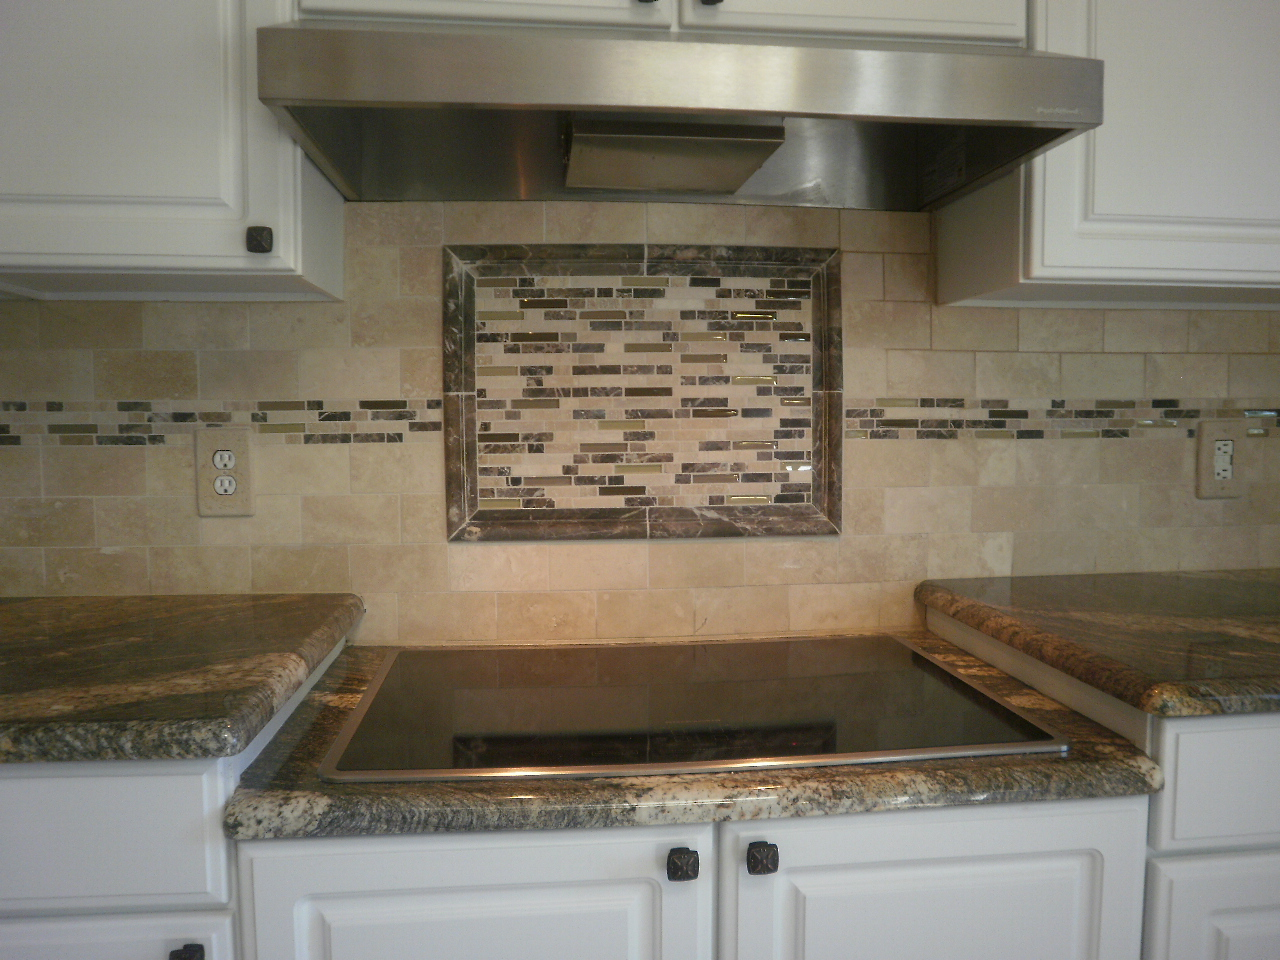 kitchen backsplash ideas glass tile afreakatheart all about home decoration amp furniture kitchen backsplash